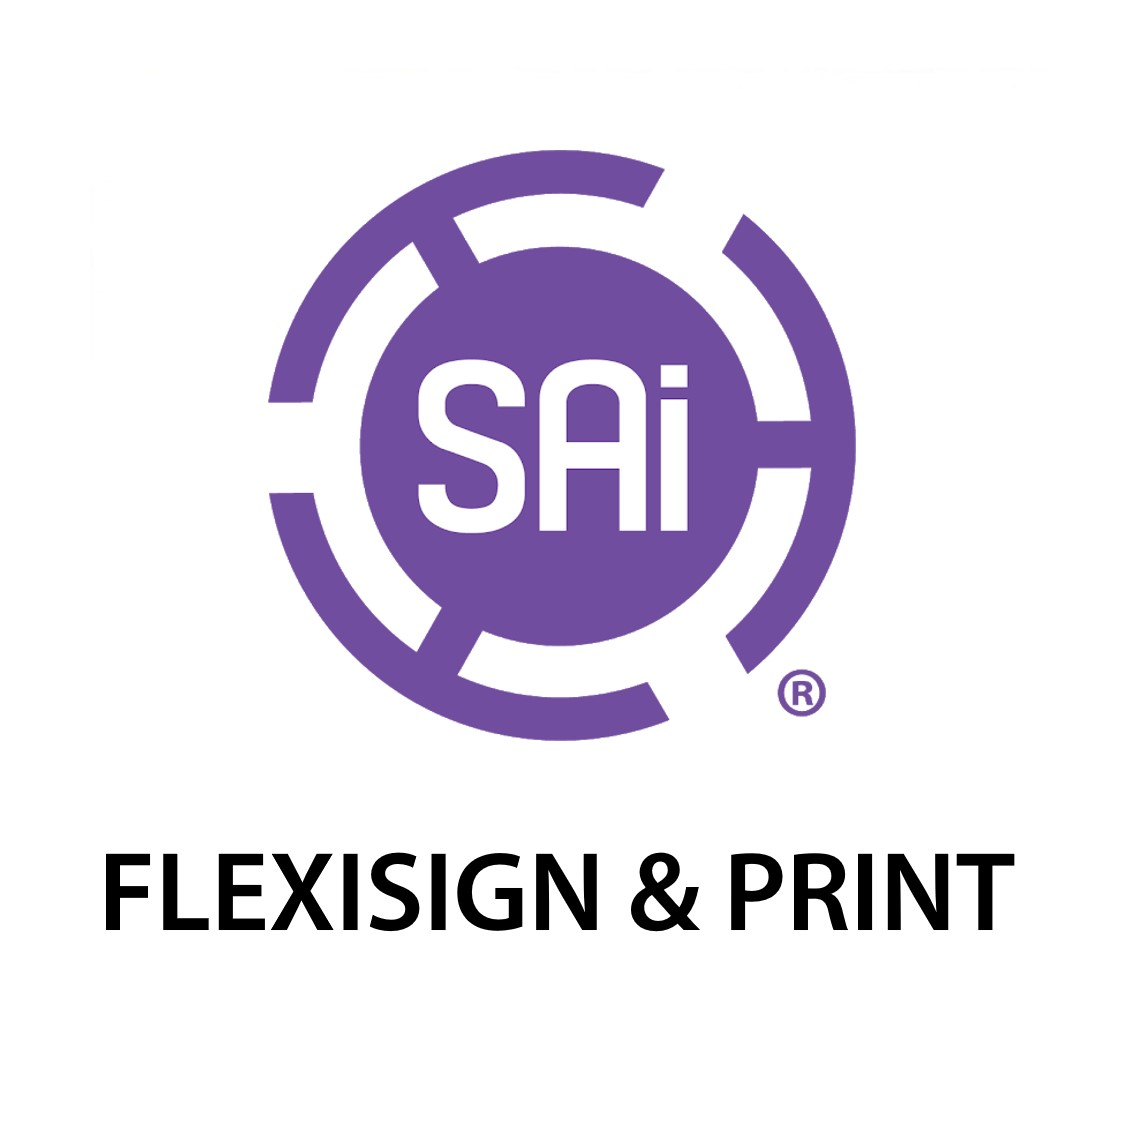 Sai Flexisign Print Software Signmaking Software Graphtec Gb